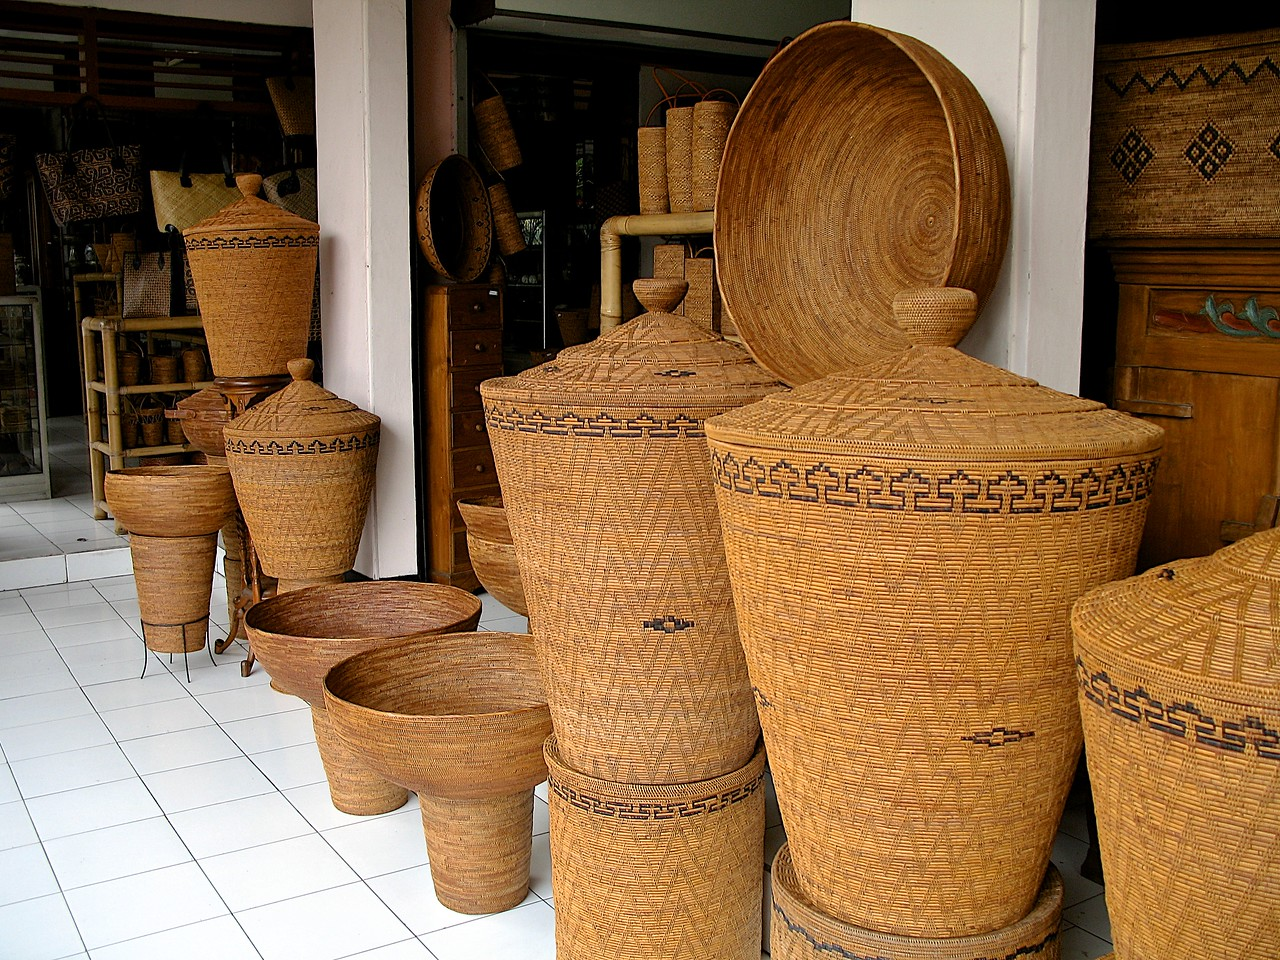 Outside of the market, there are other boutiques specializing in all kinds of local crafts.